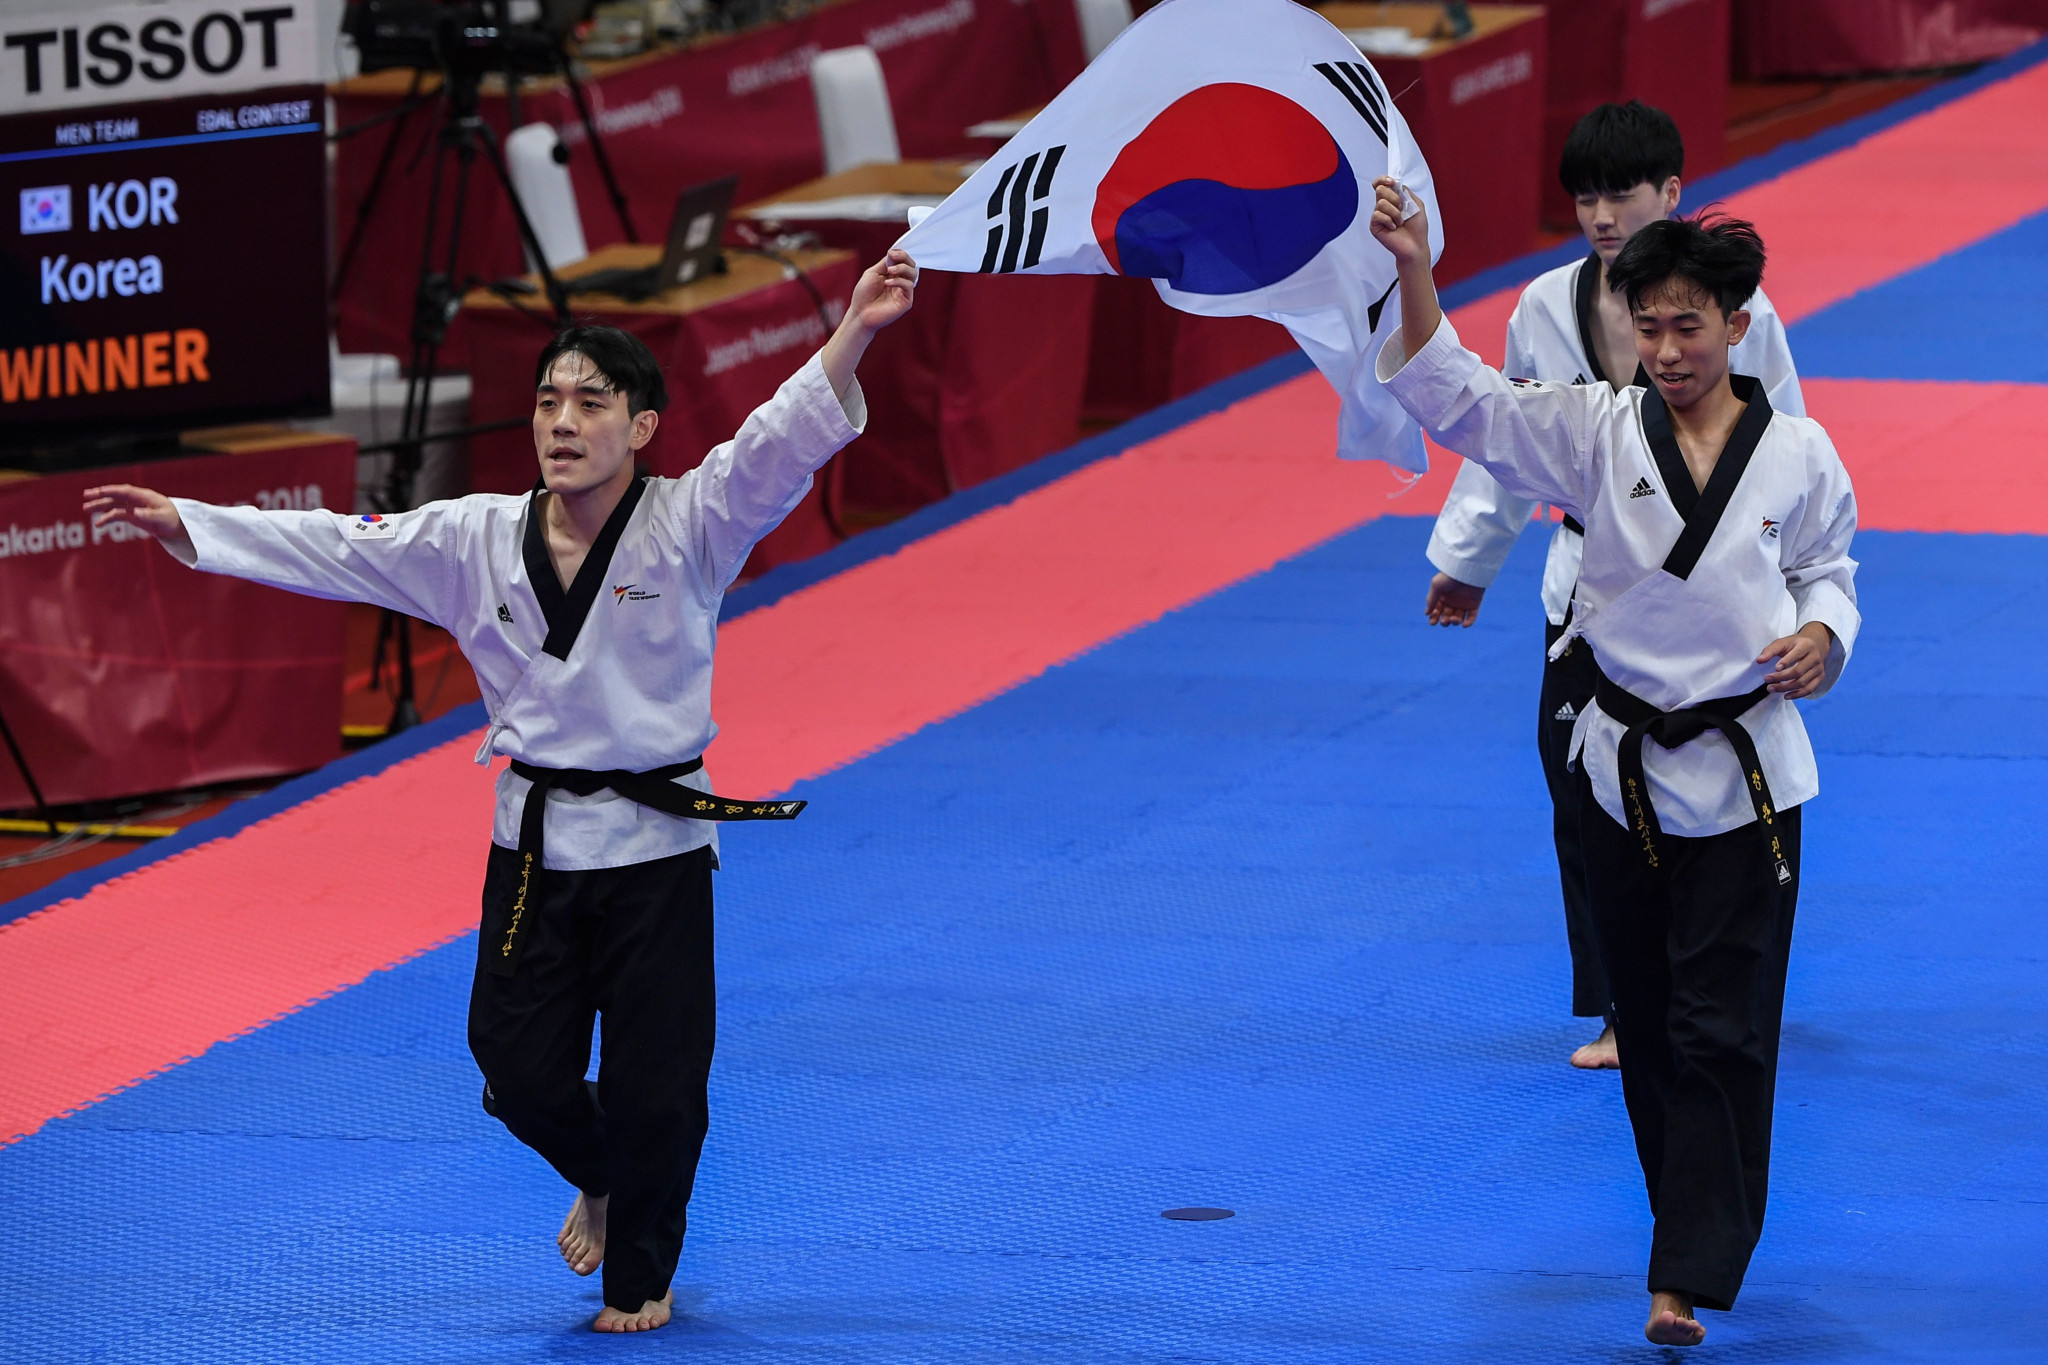 Taekwondo is an important part of Korean culture ©Getty Images